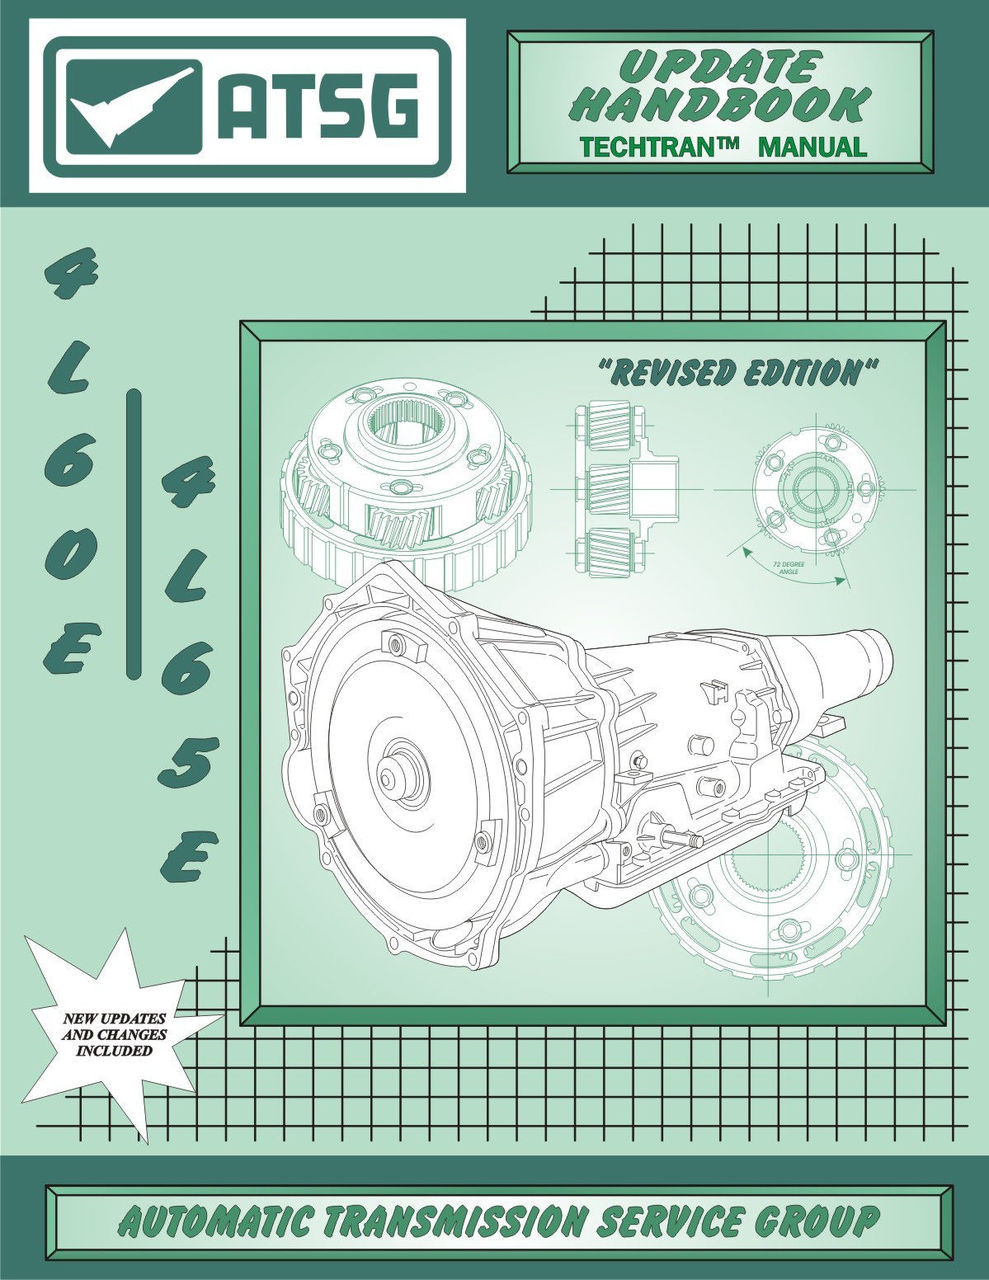 ATSG Tech Manual 4L60E 4L65E Update Handbook 1993-On Repair Book 4L6OE  Automatic